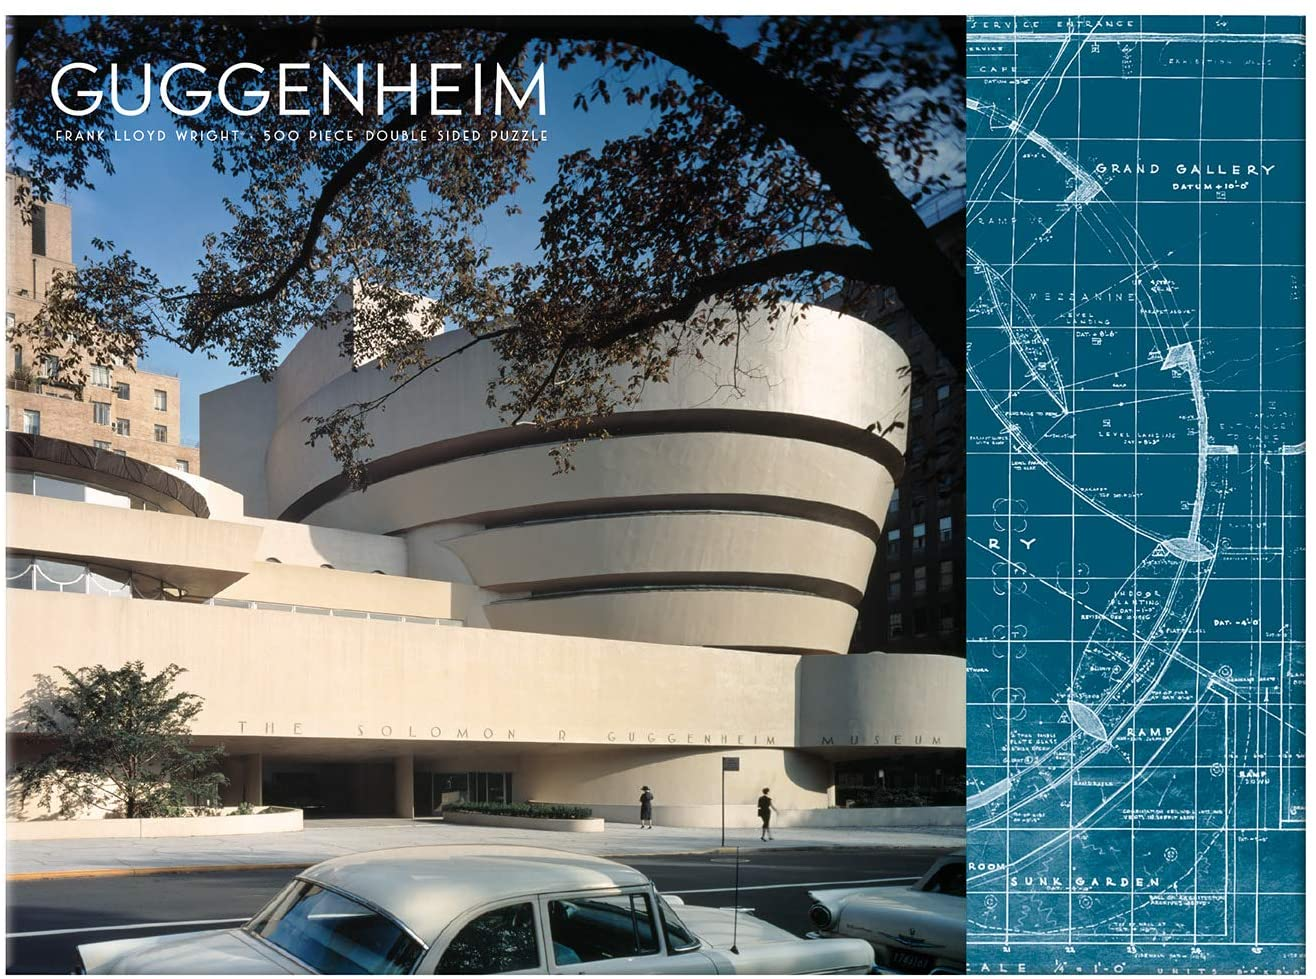 Guggenheim Museum 500 Piece, Double-Sided Puzzle